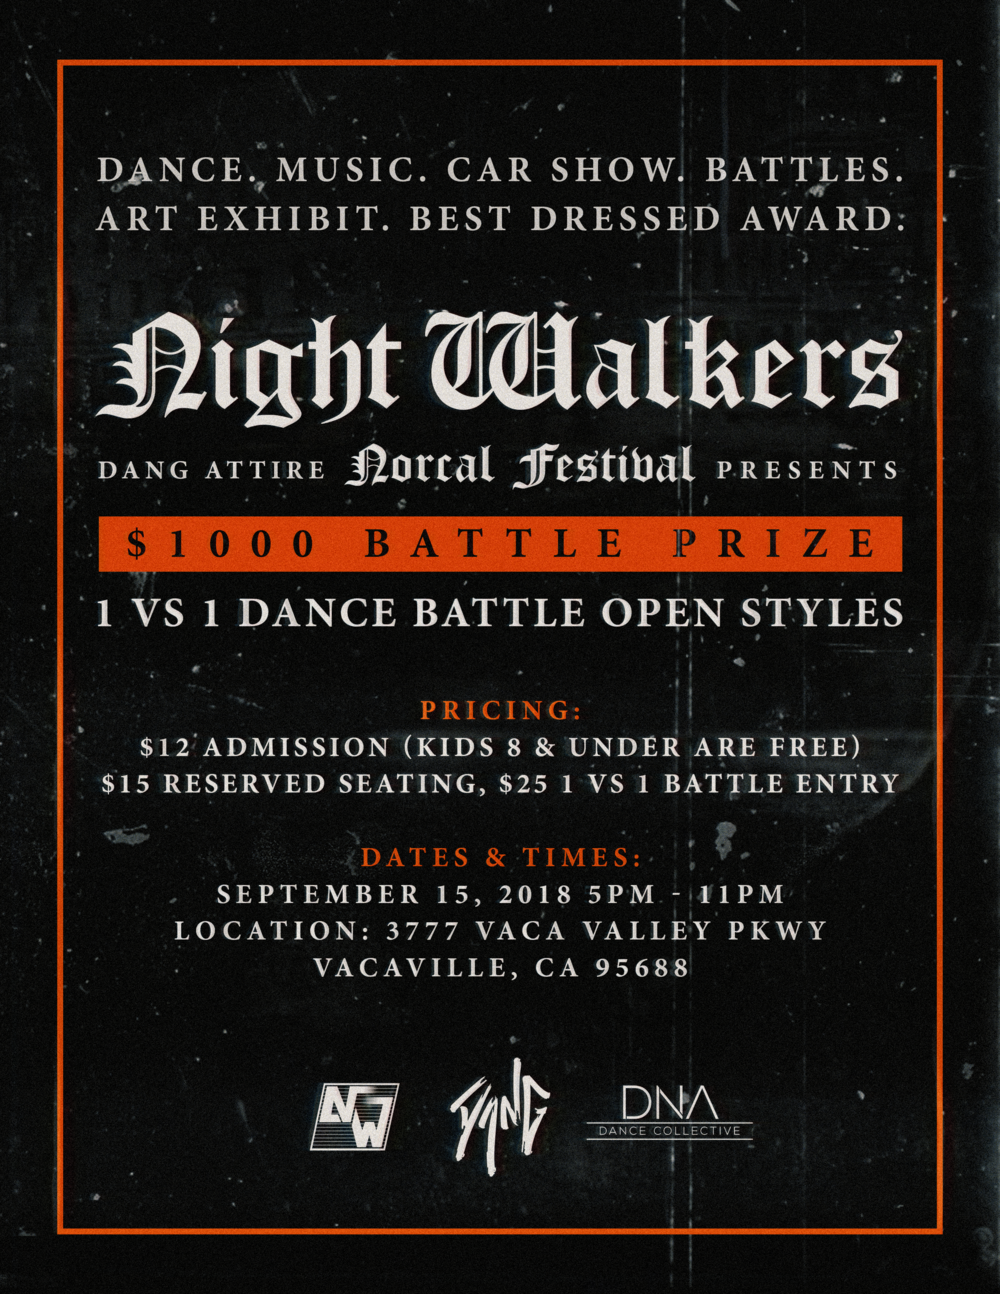 NIGHT WALKERS Norcal FESTIVAL 2018 -